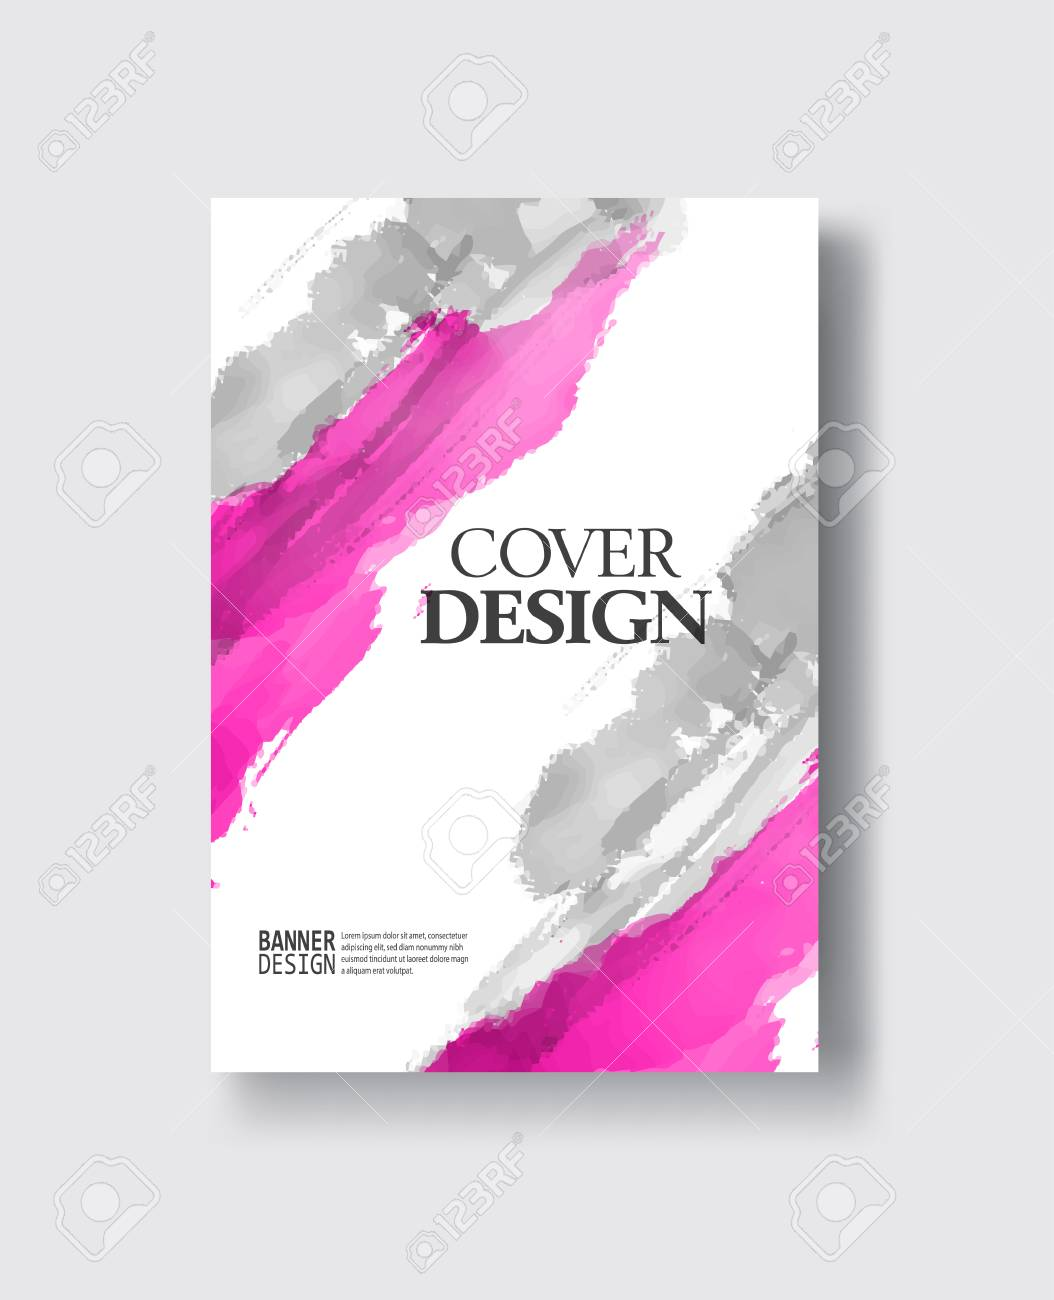 Elegant Brochure Template Design With Ink Brush Elements. Abstract ...